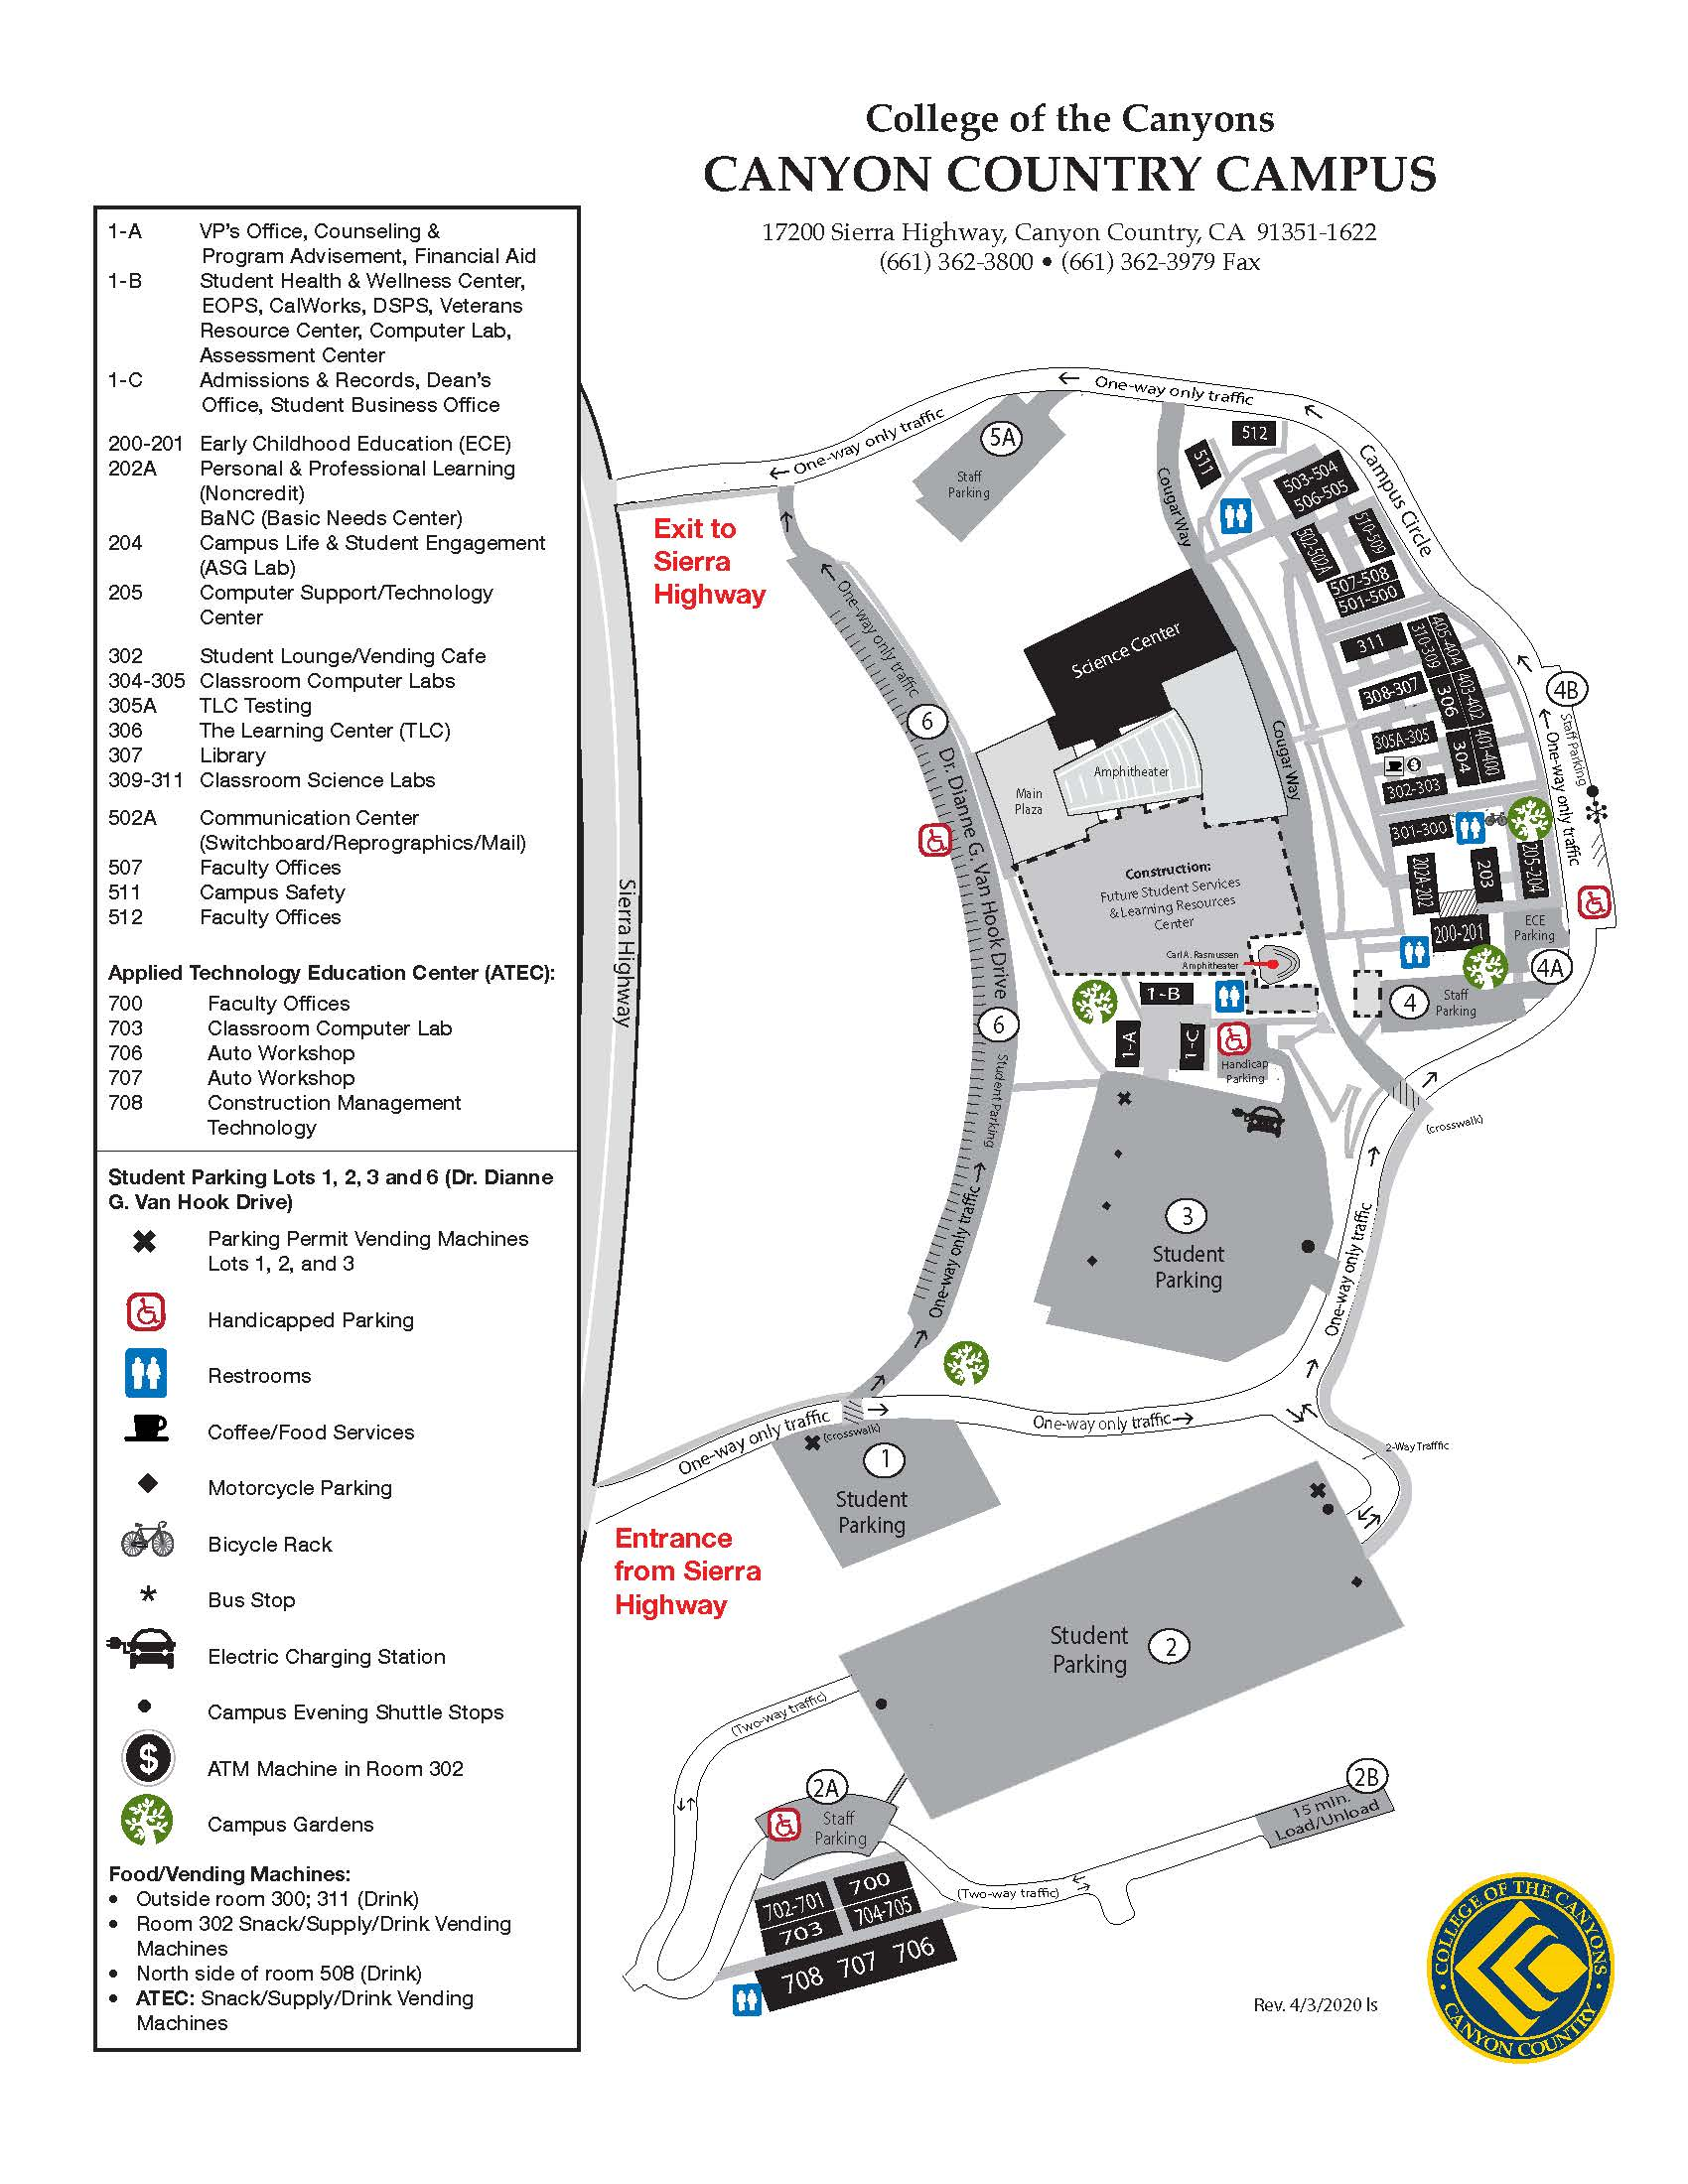 coc canyon country campus map Campus Map coc canyon country campus map